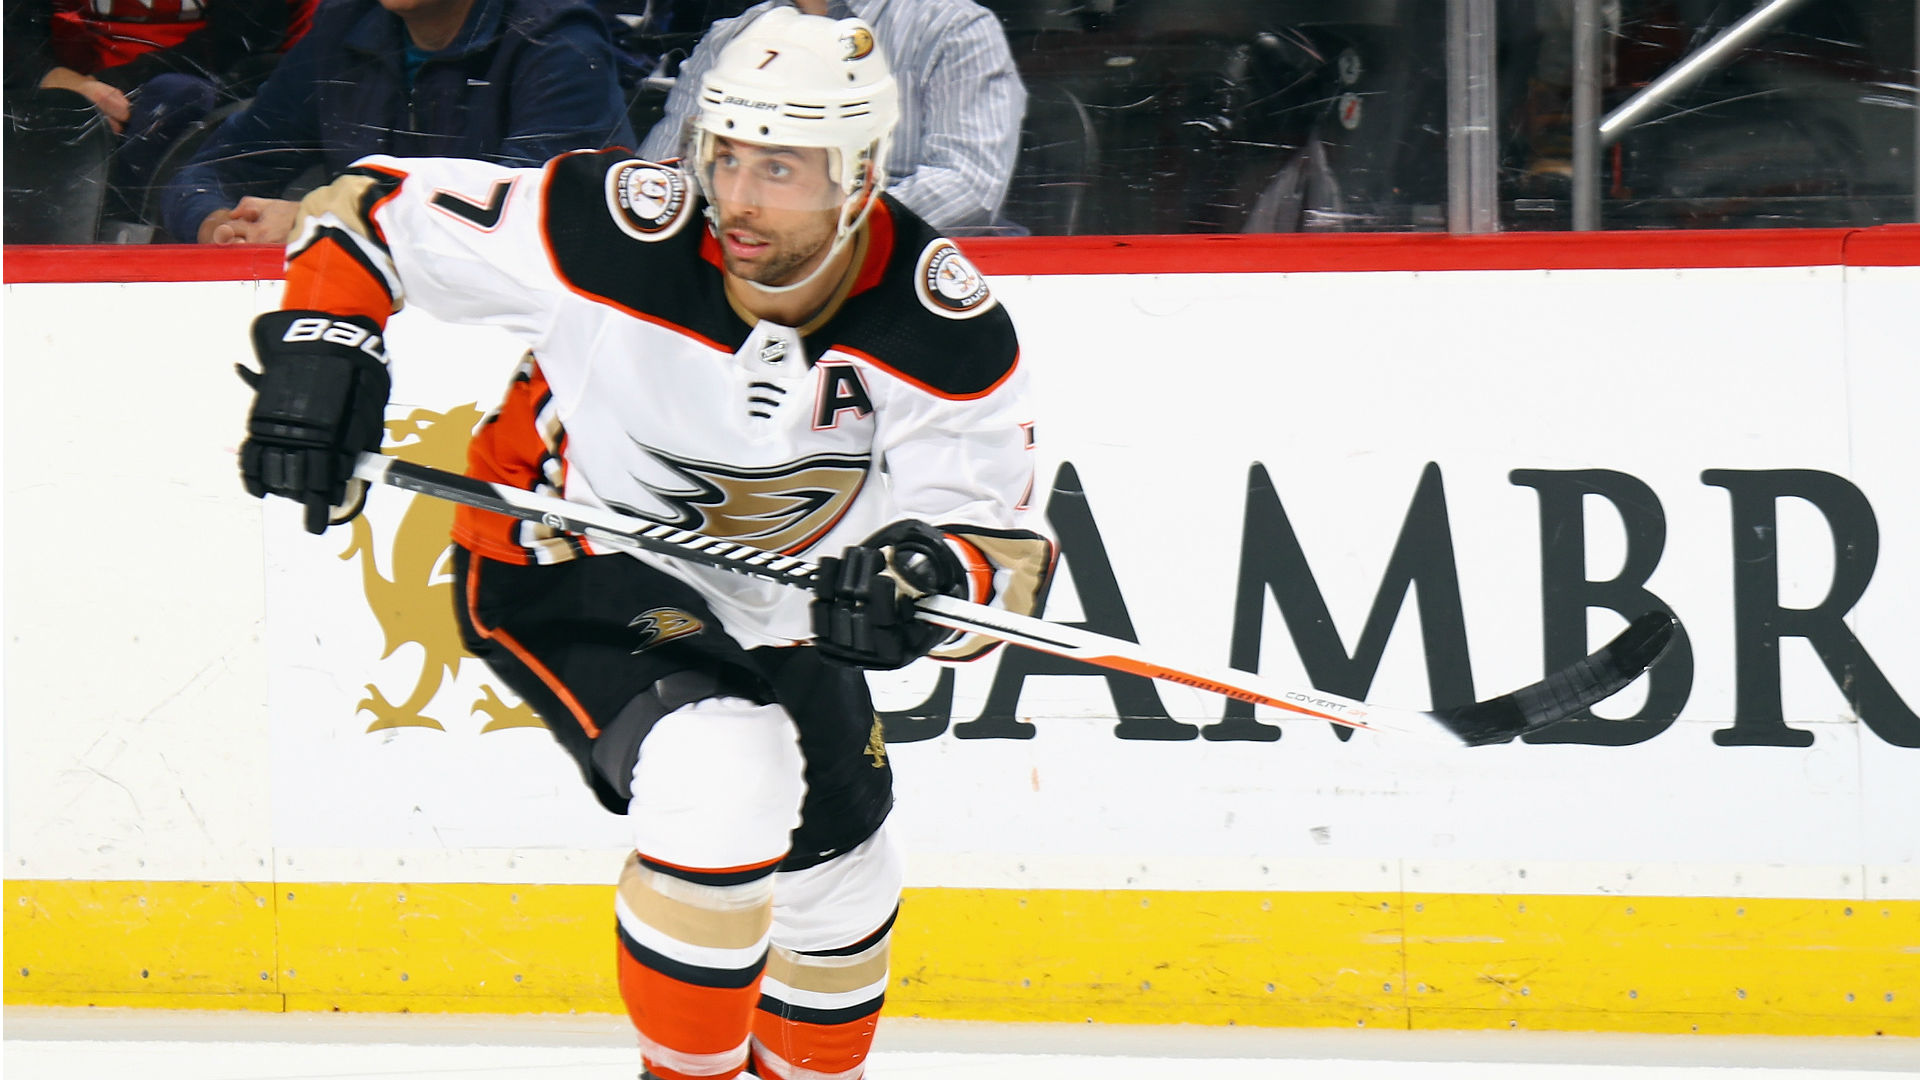 Andrew Cogliano's consecutive games streak ends as Ducks fall to Avalanche